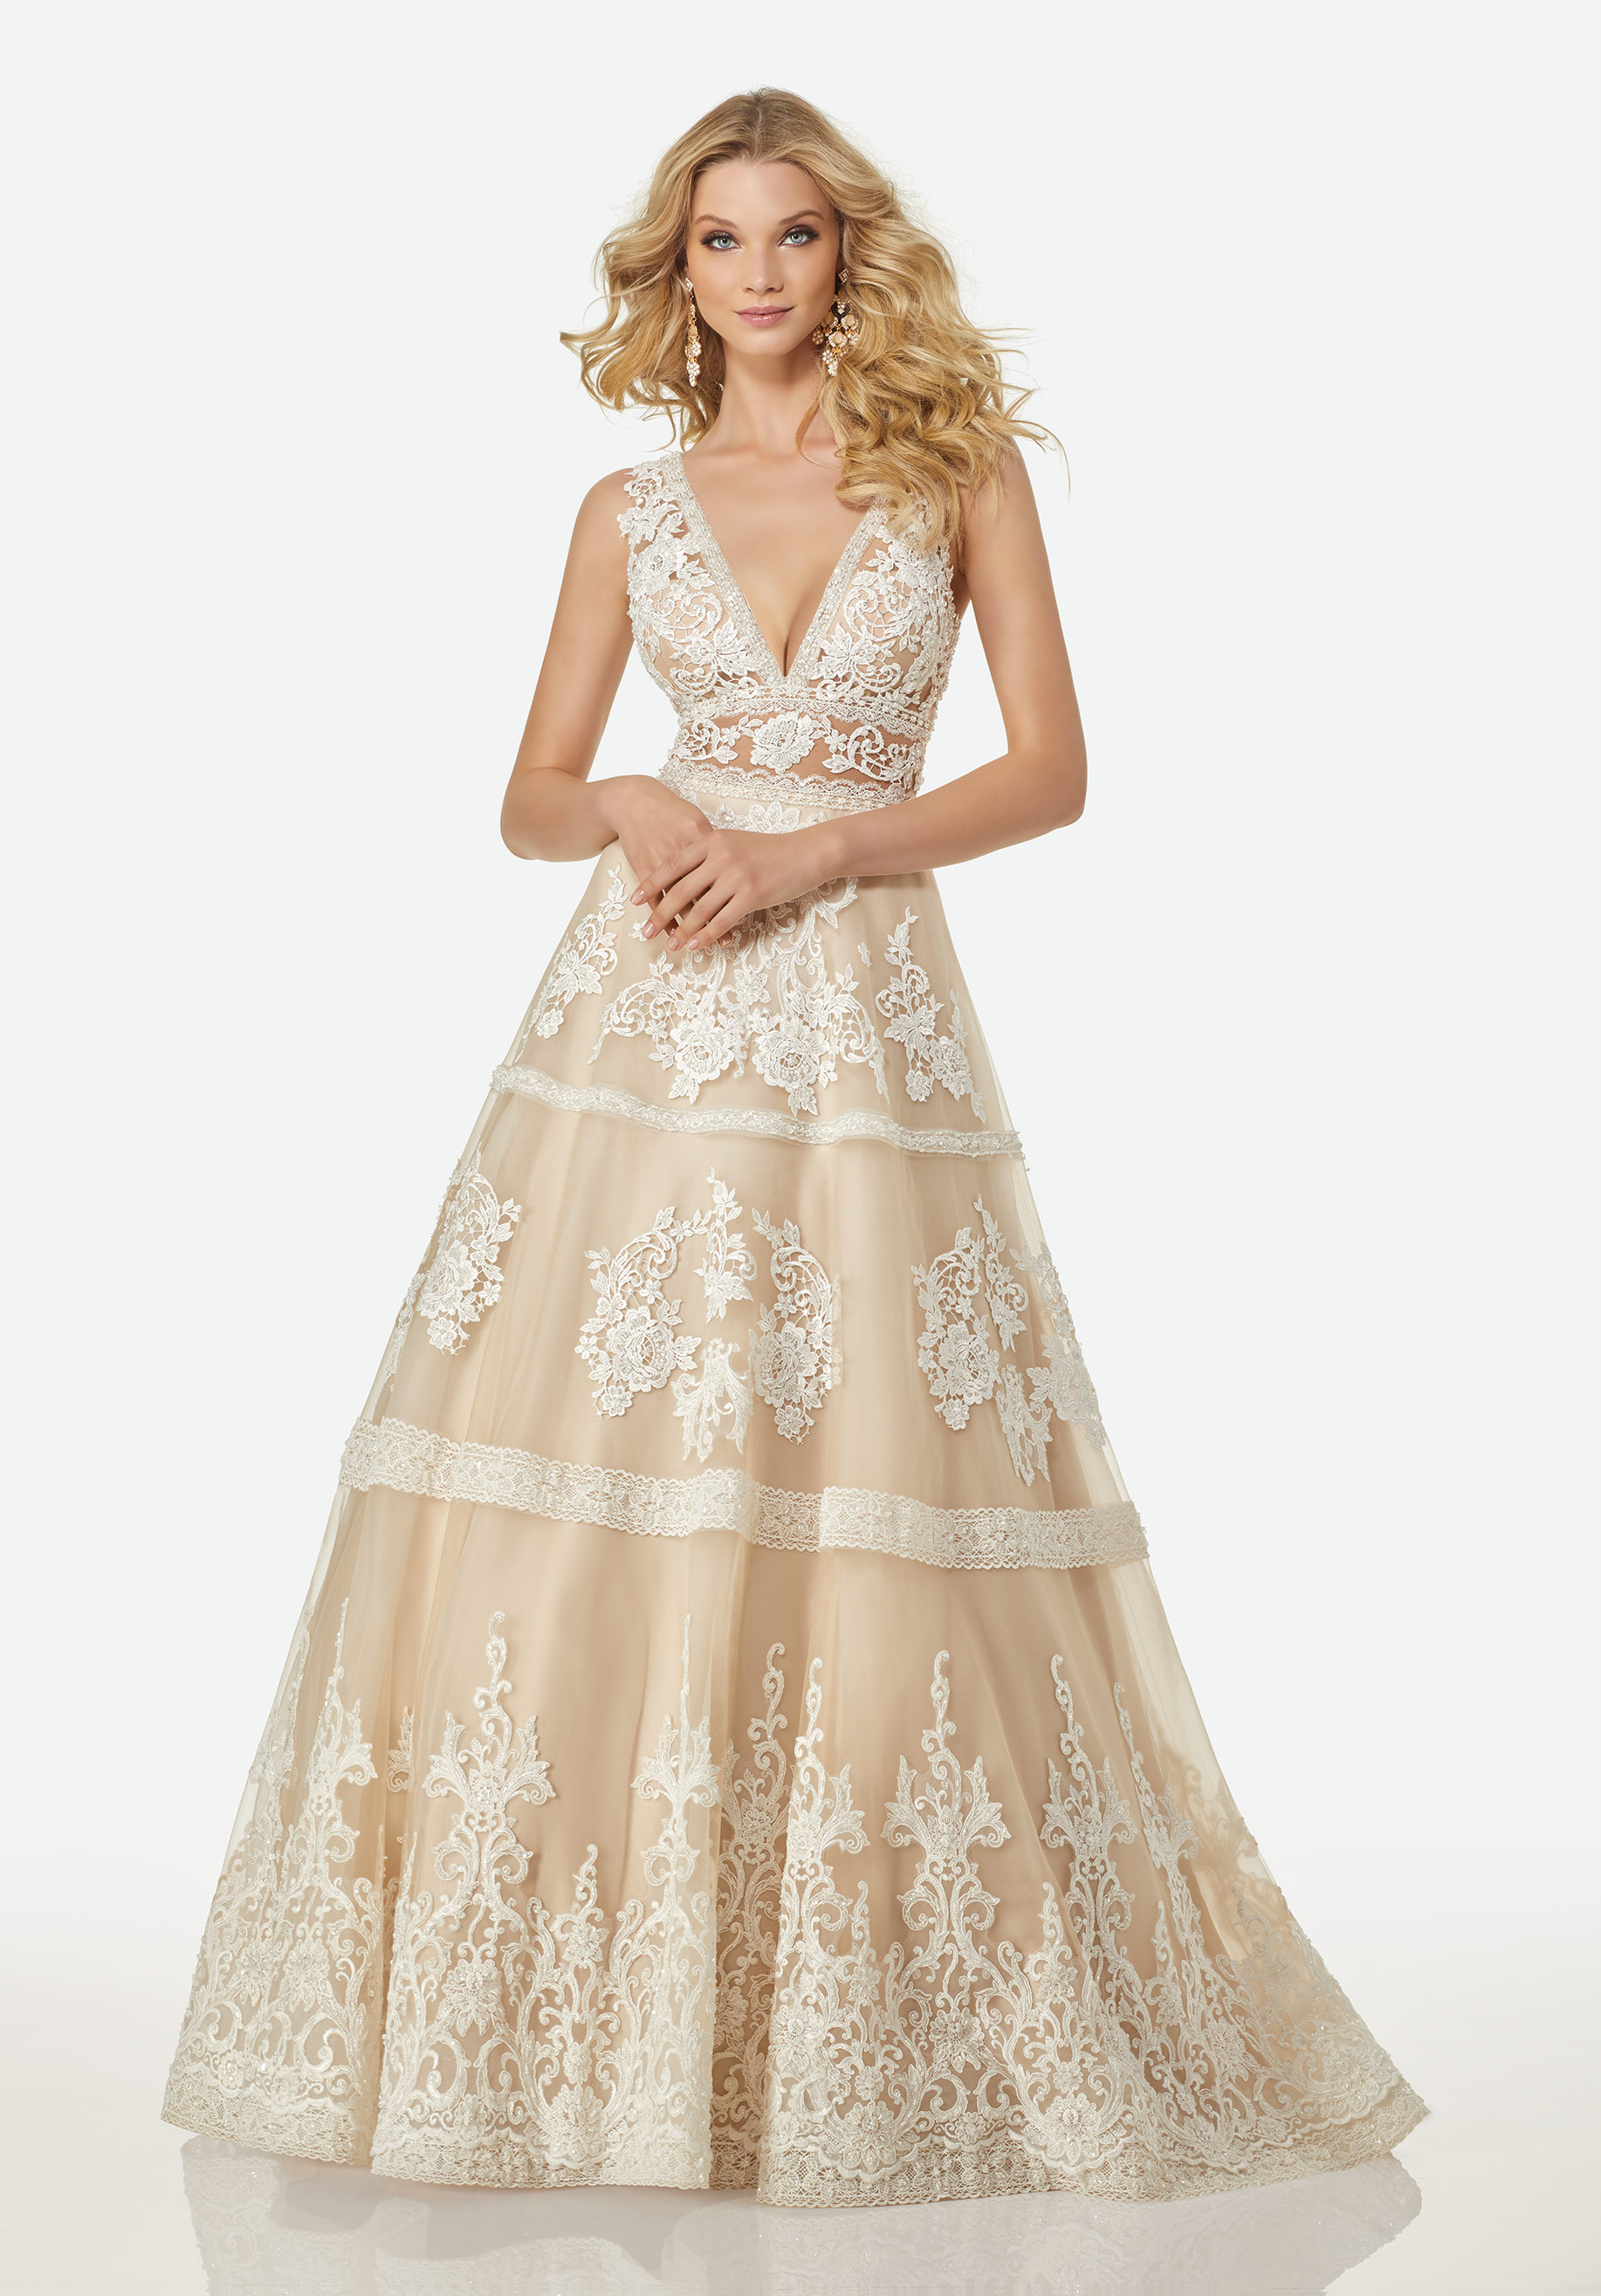 Style Luannexs · Bohemian Aline Wedding Dress By Randy Fenoli: Natural Colored Wedding Dress At Websimilar.org